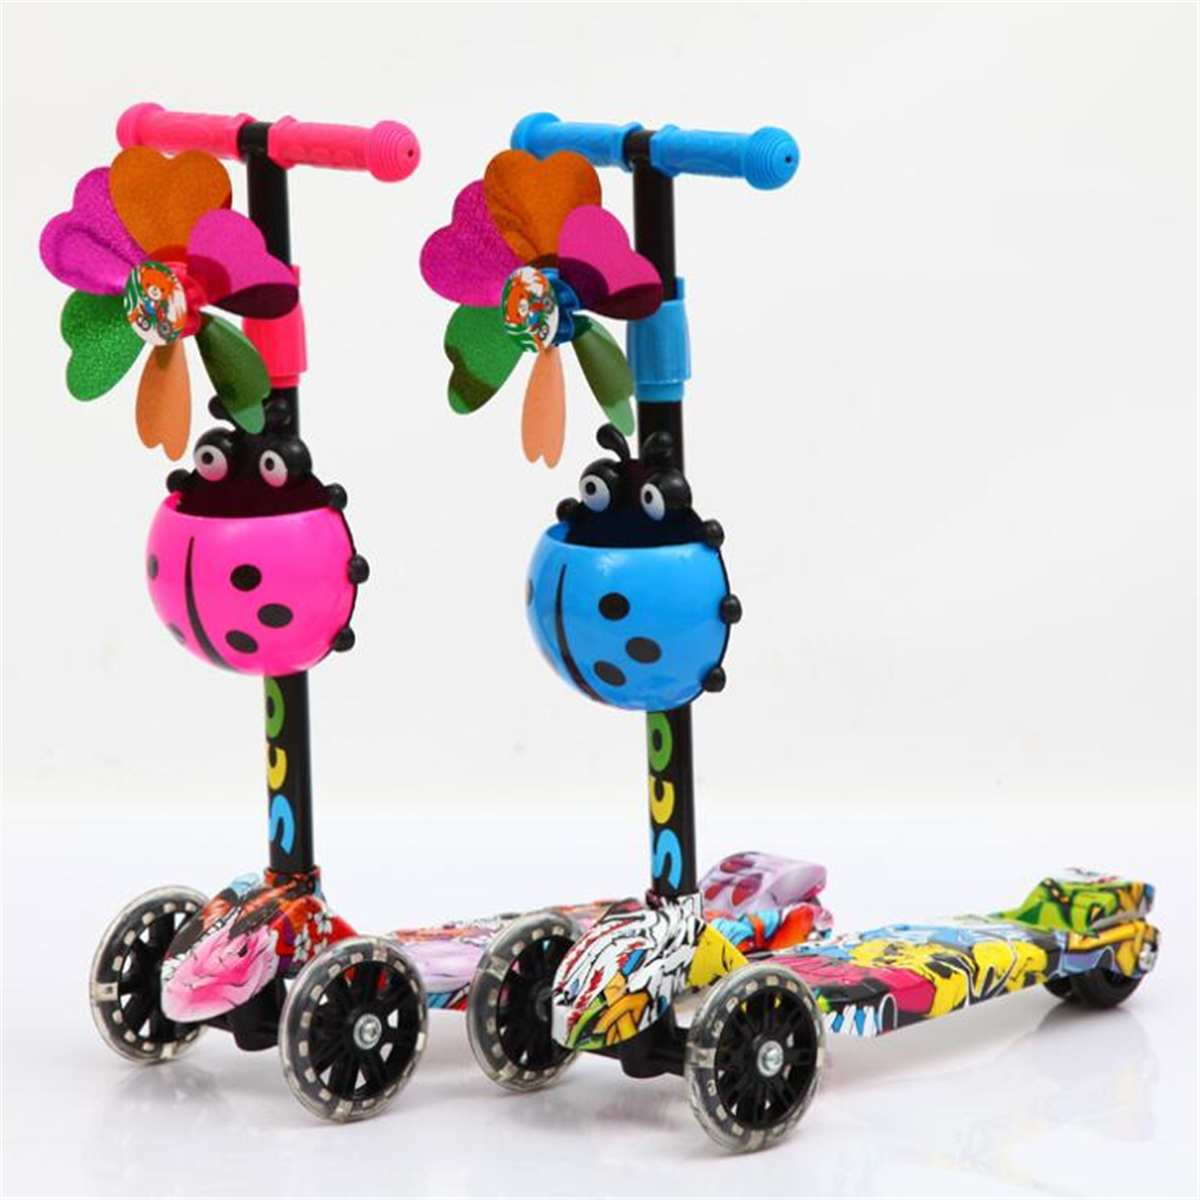 Childrens 4 wheel Foot Scooters Adjustable Unisex Kick Scooter LED Light Up Children City Roller Skateboard Gifts For Kids PinkChildrens 4 wheel Foot Scooters Adjustable Unisex Kick Scooter LED Light Up Children City Roller Skateboard Gifts For Kids Pink